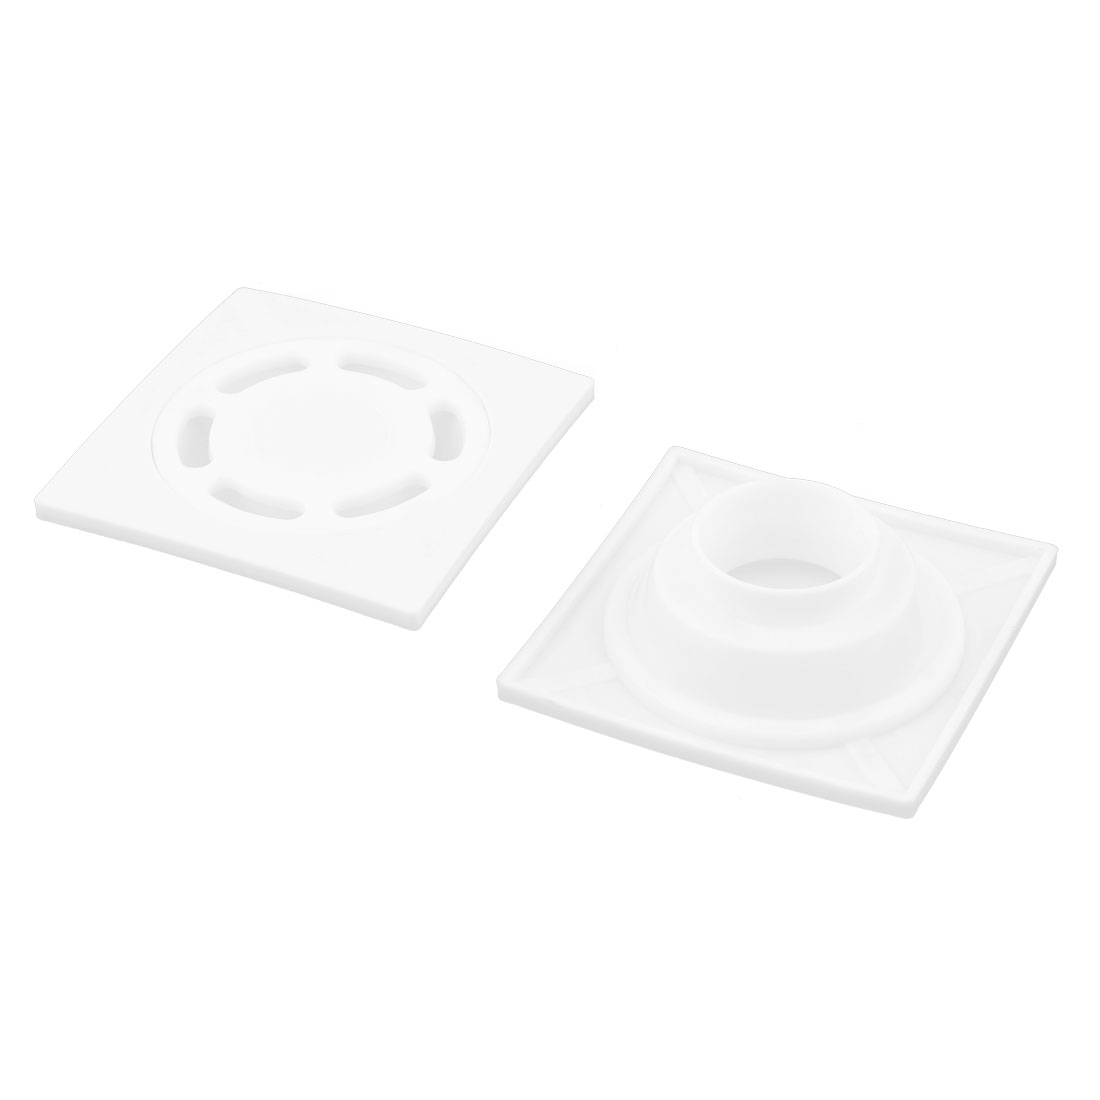 Home Plastic Square Sundries Hair Stopper Water Strainer Floor Drain White 2 Pcs